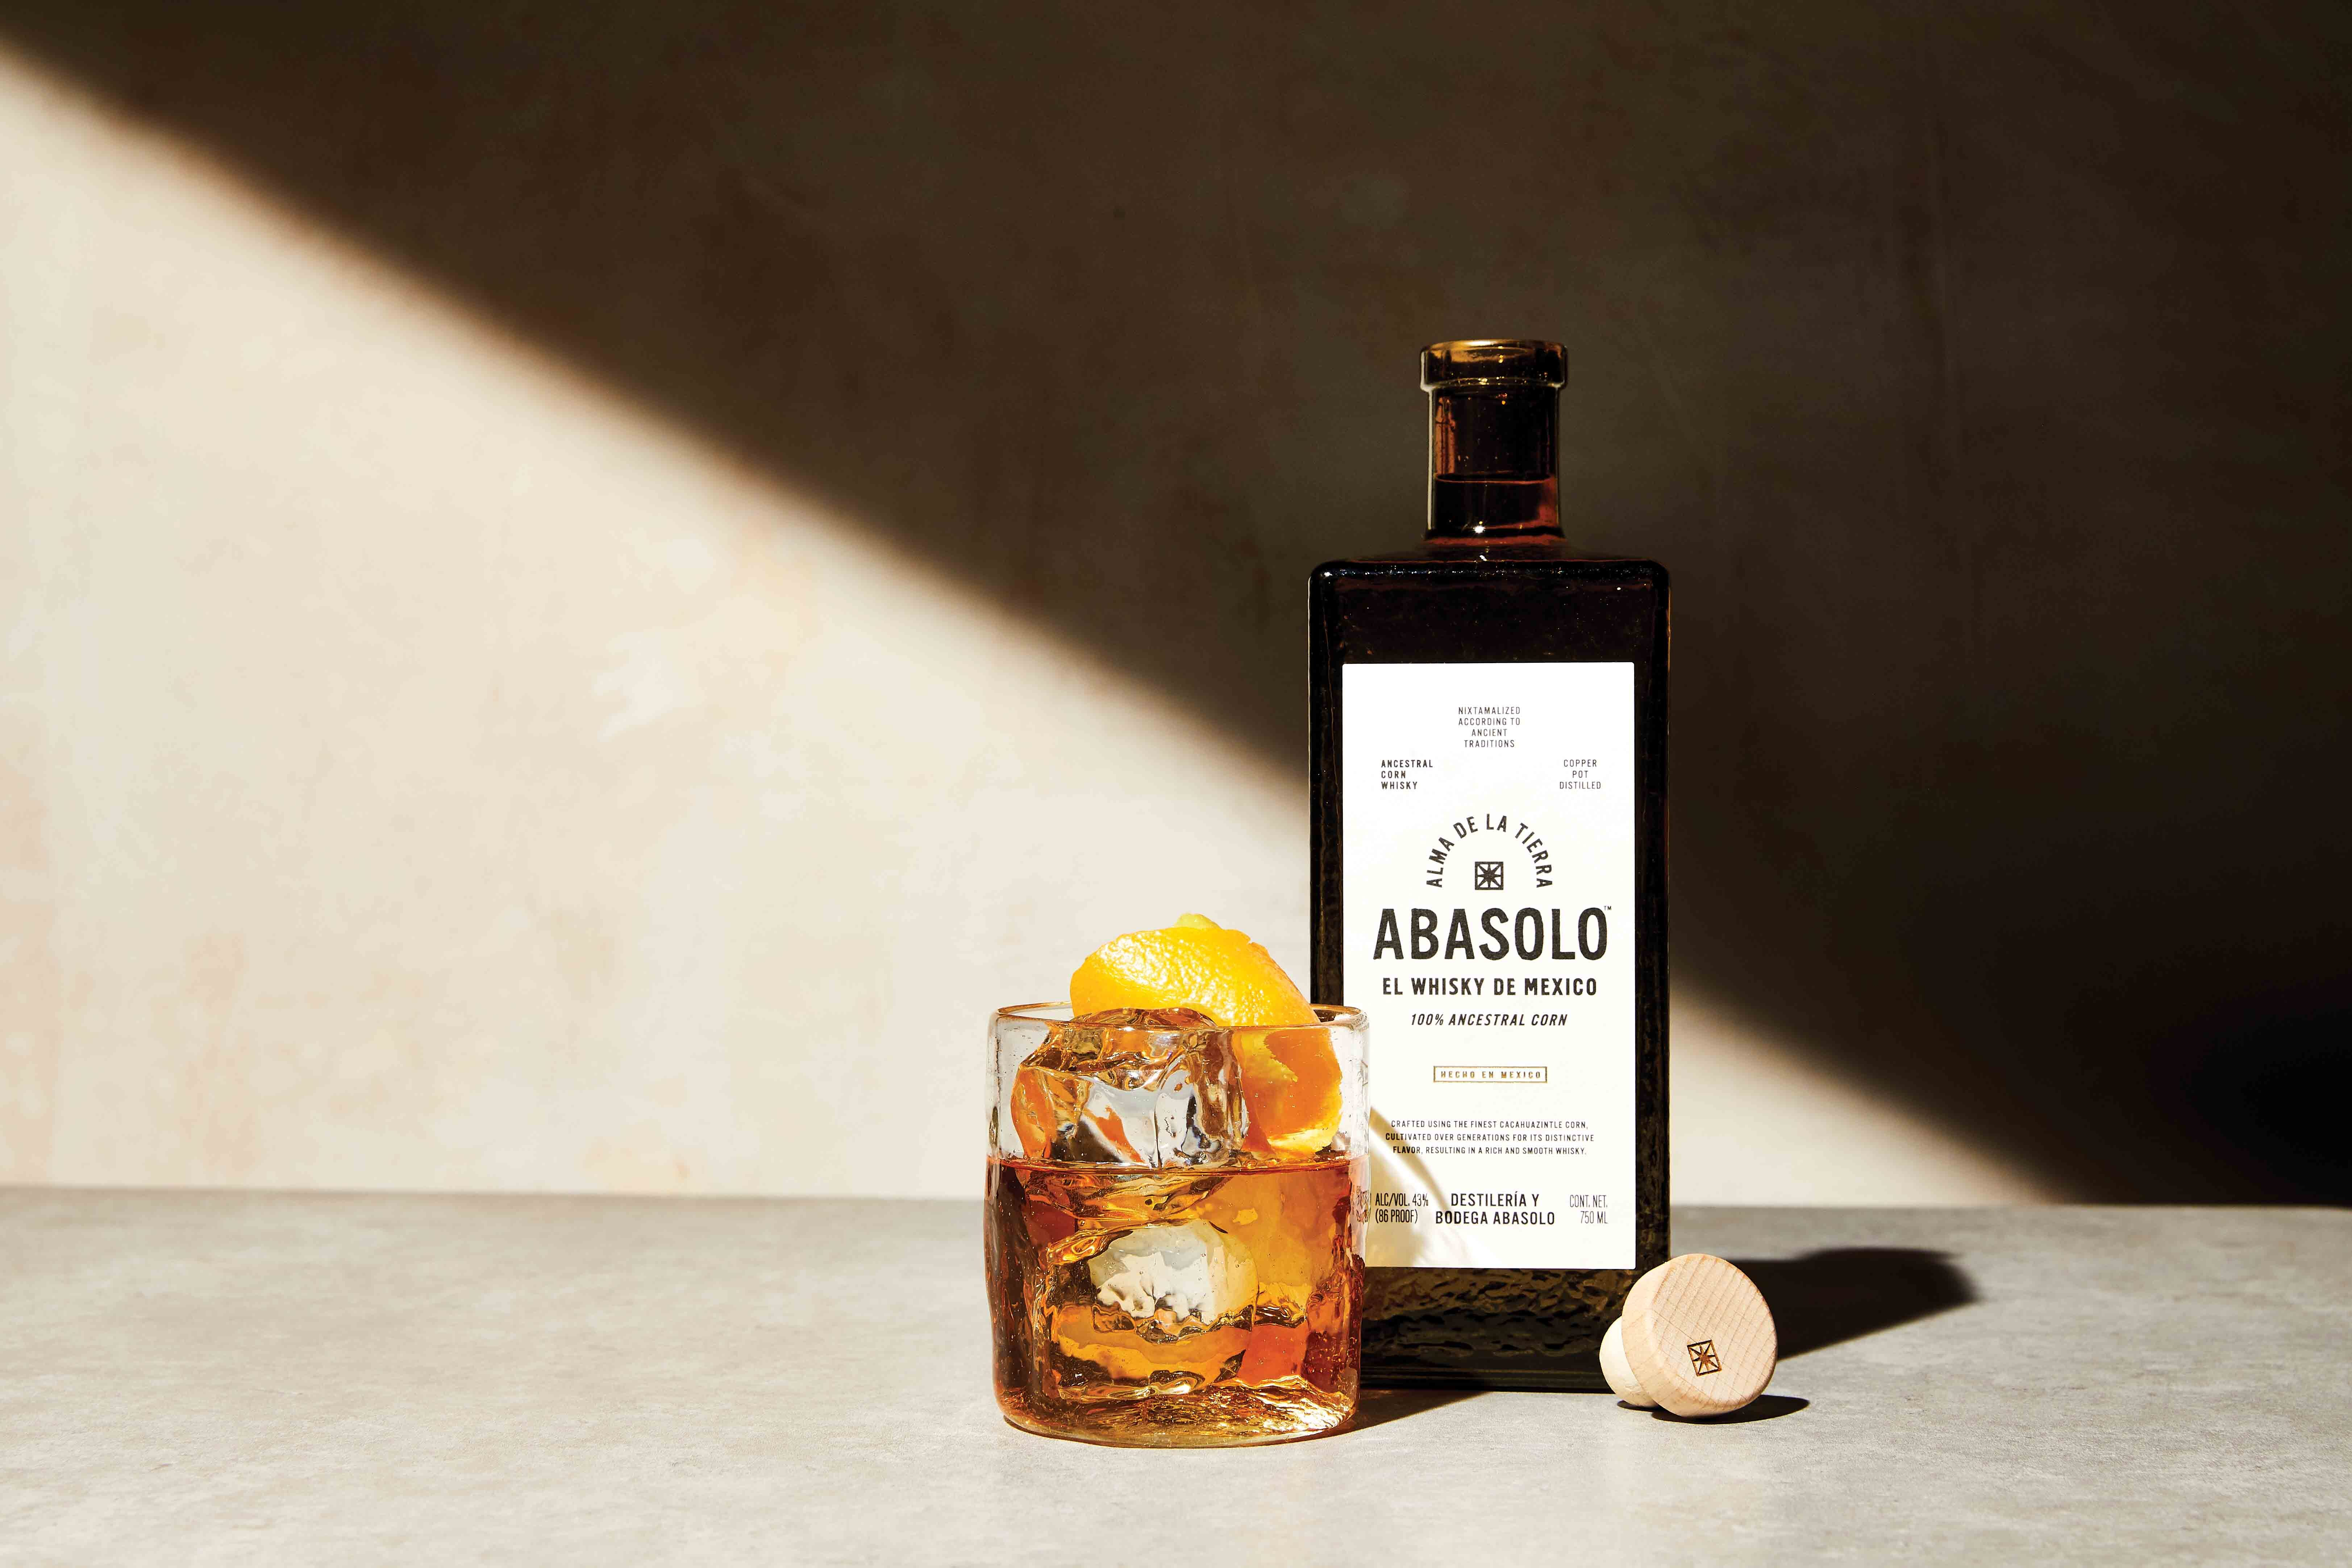 Abasolo Ancestral Corn Whisky Pays Homage to Mexico's Heritage